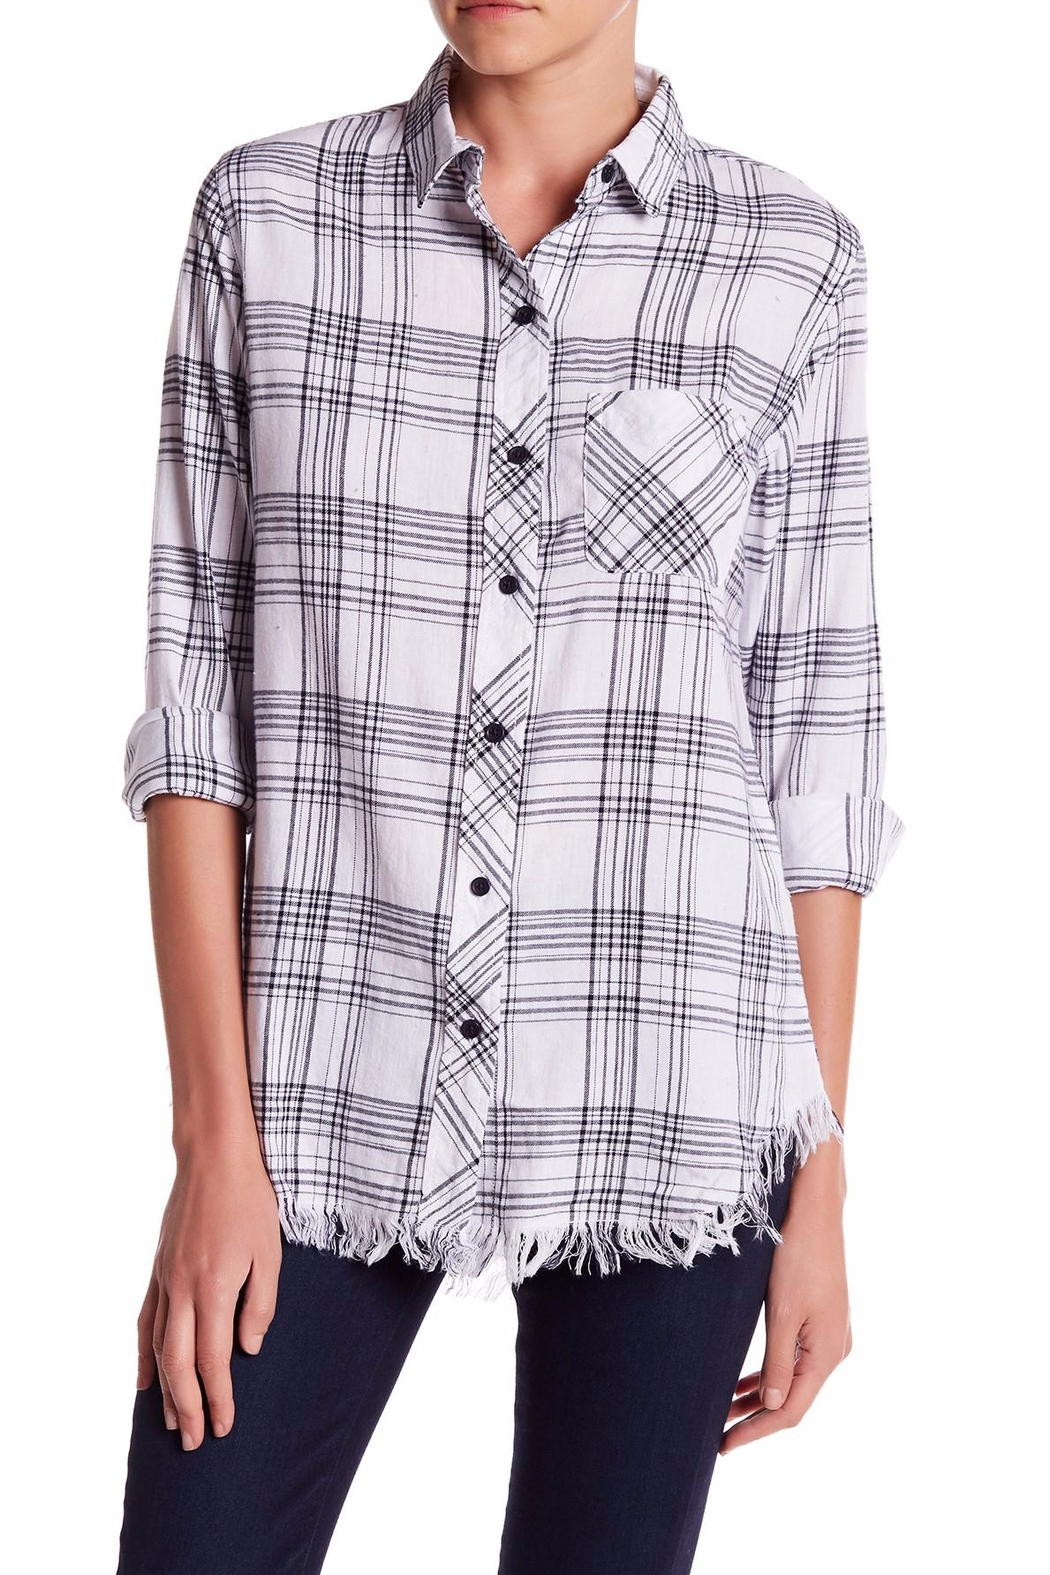 Beach Lunch Lounge Elyse Frayed Hem Shirt - Main Image